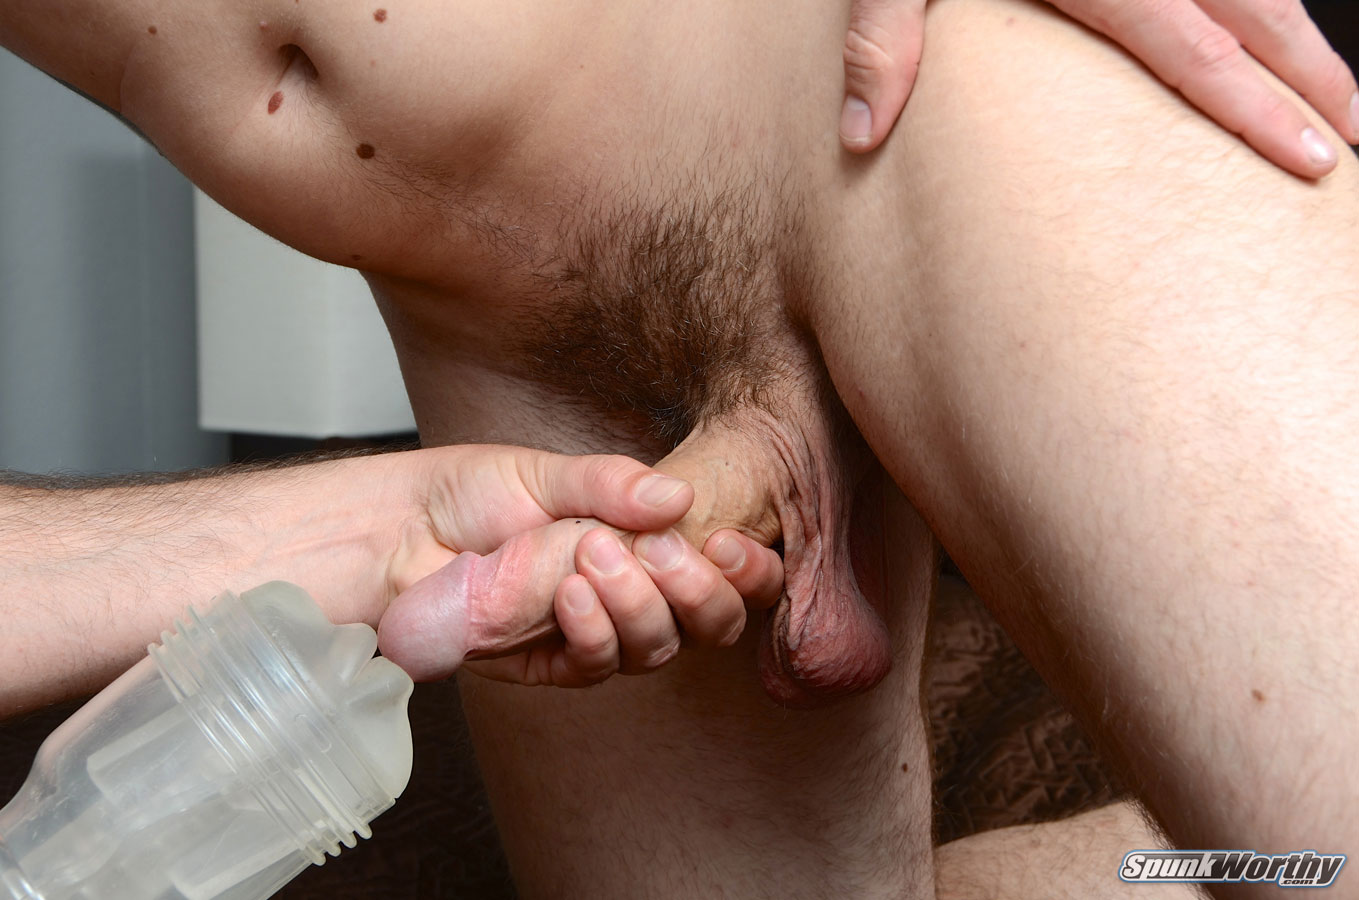 SpunkWorthy-Eli-Straight-Marine-Gets-A-Hand-Job-Fleshlight-from-A-guy-Amateur-Gay-Porn-14 Straight Marine Gets His First Hand Job From Another Guy